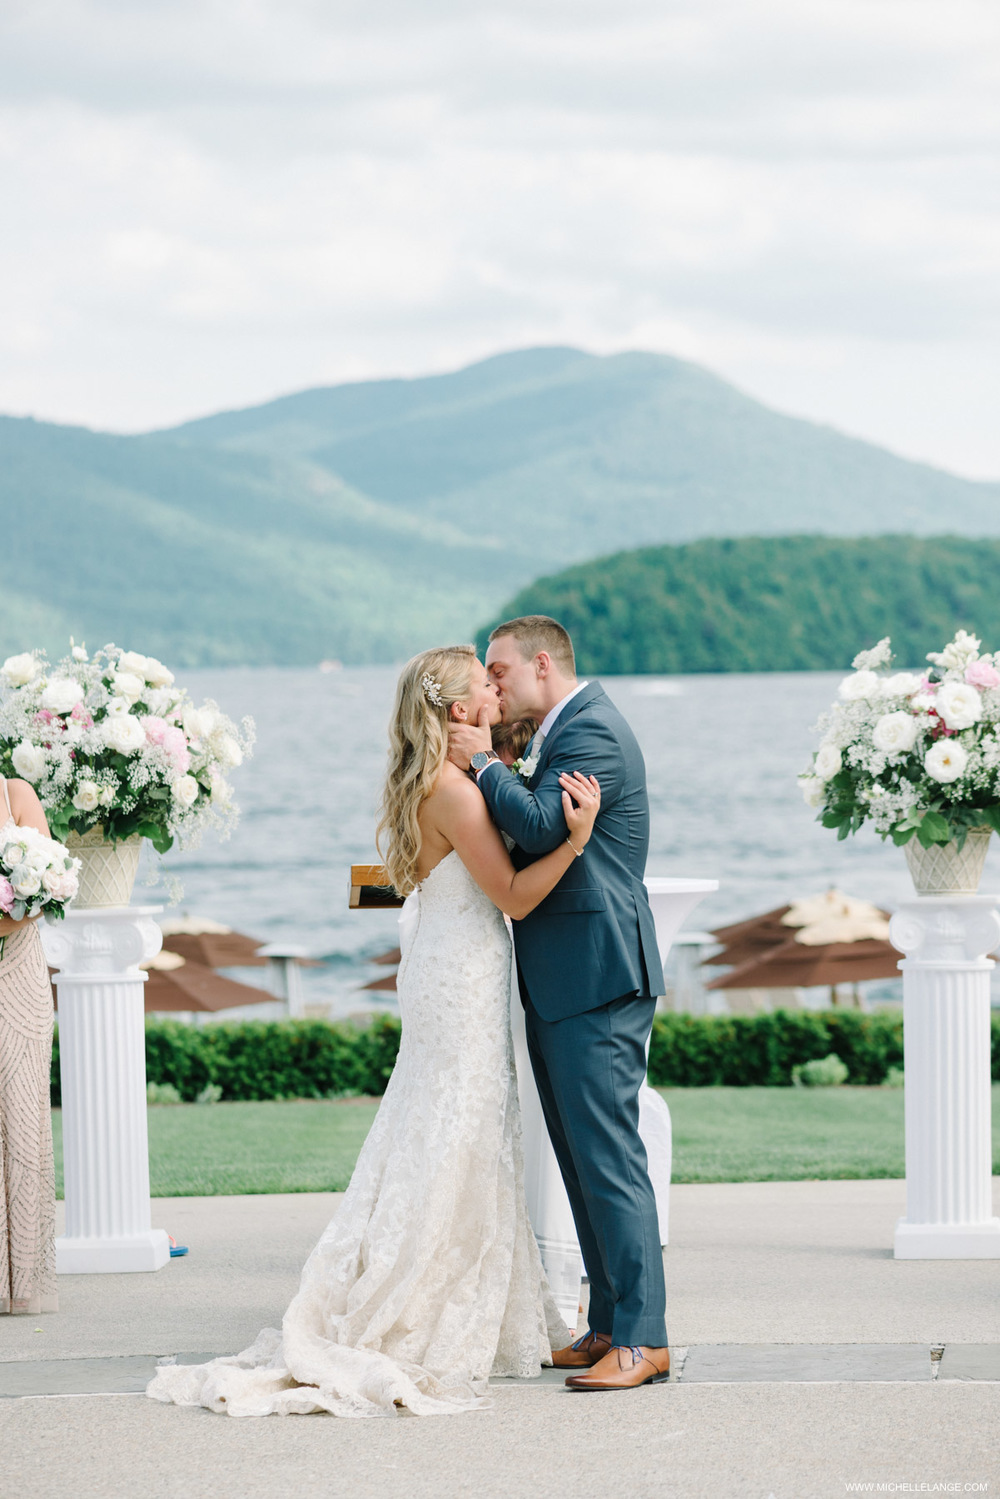 Sagamore Wedding by Michelle Lange Photography-18.jpg